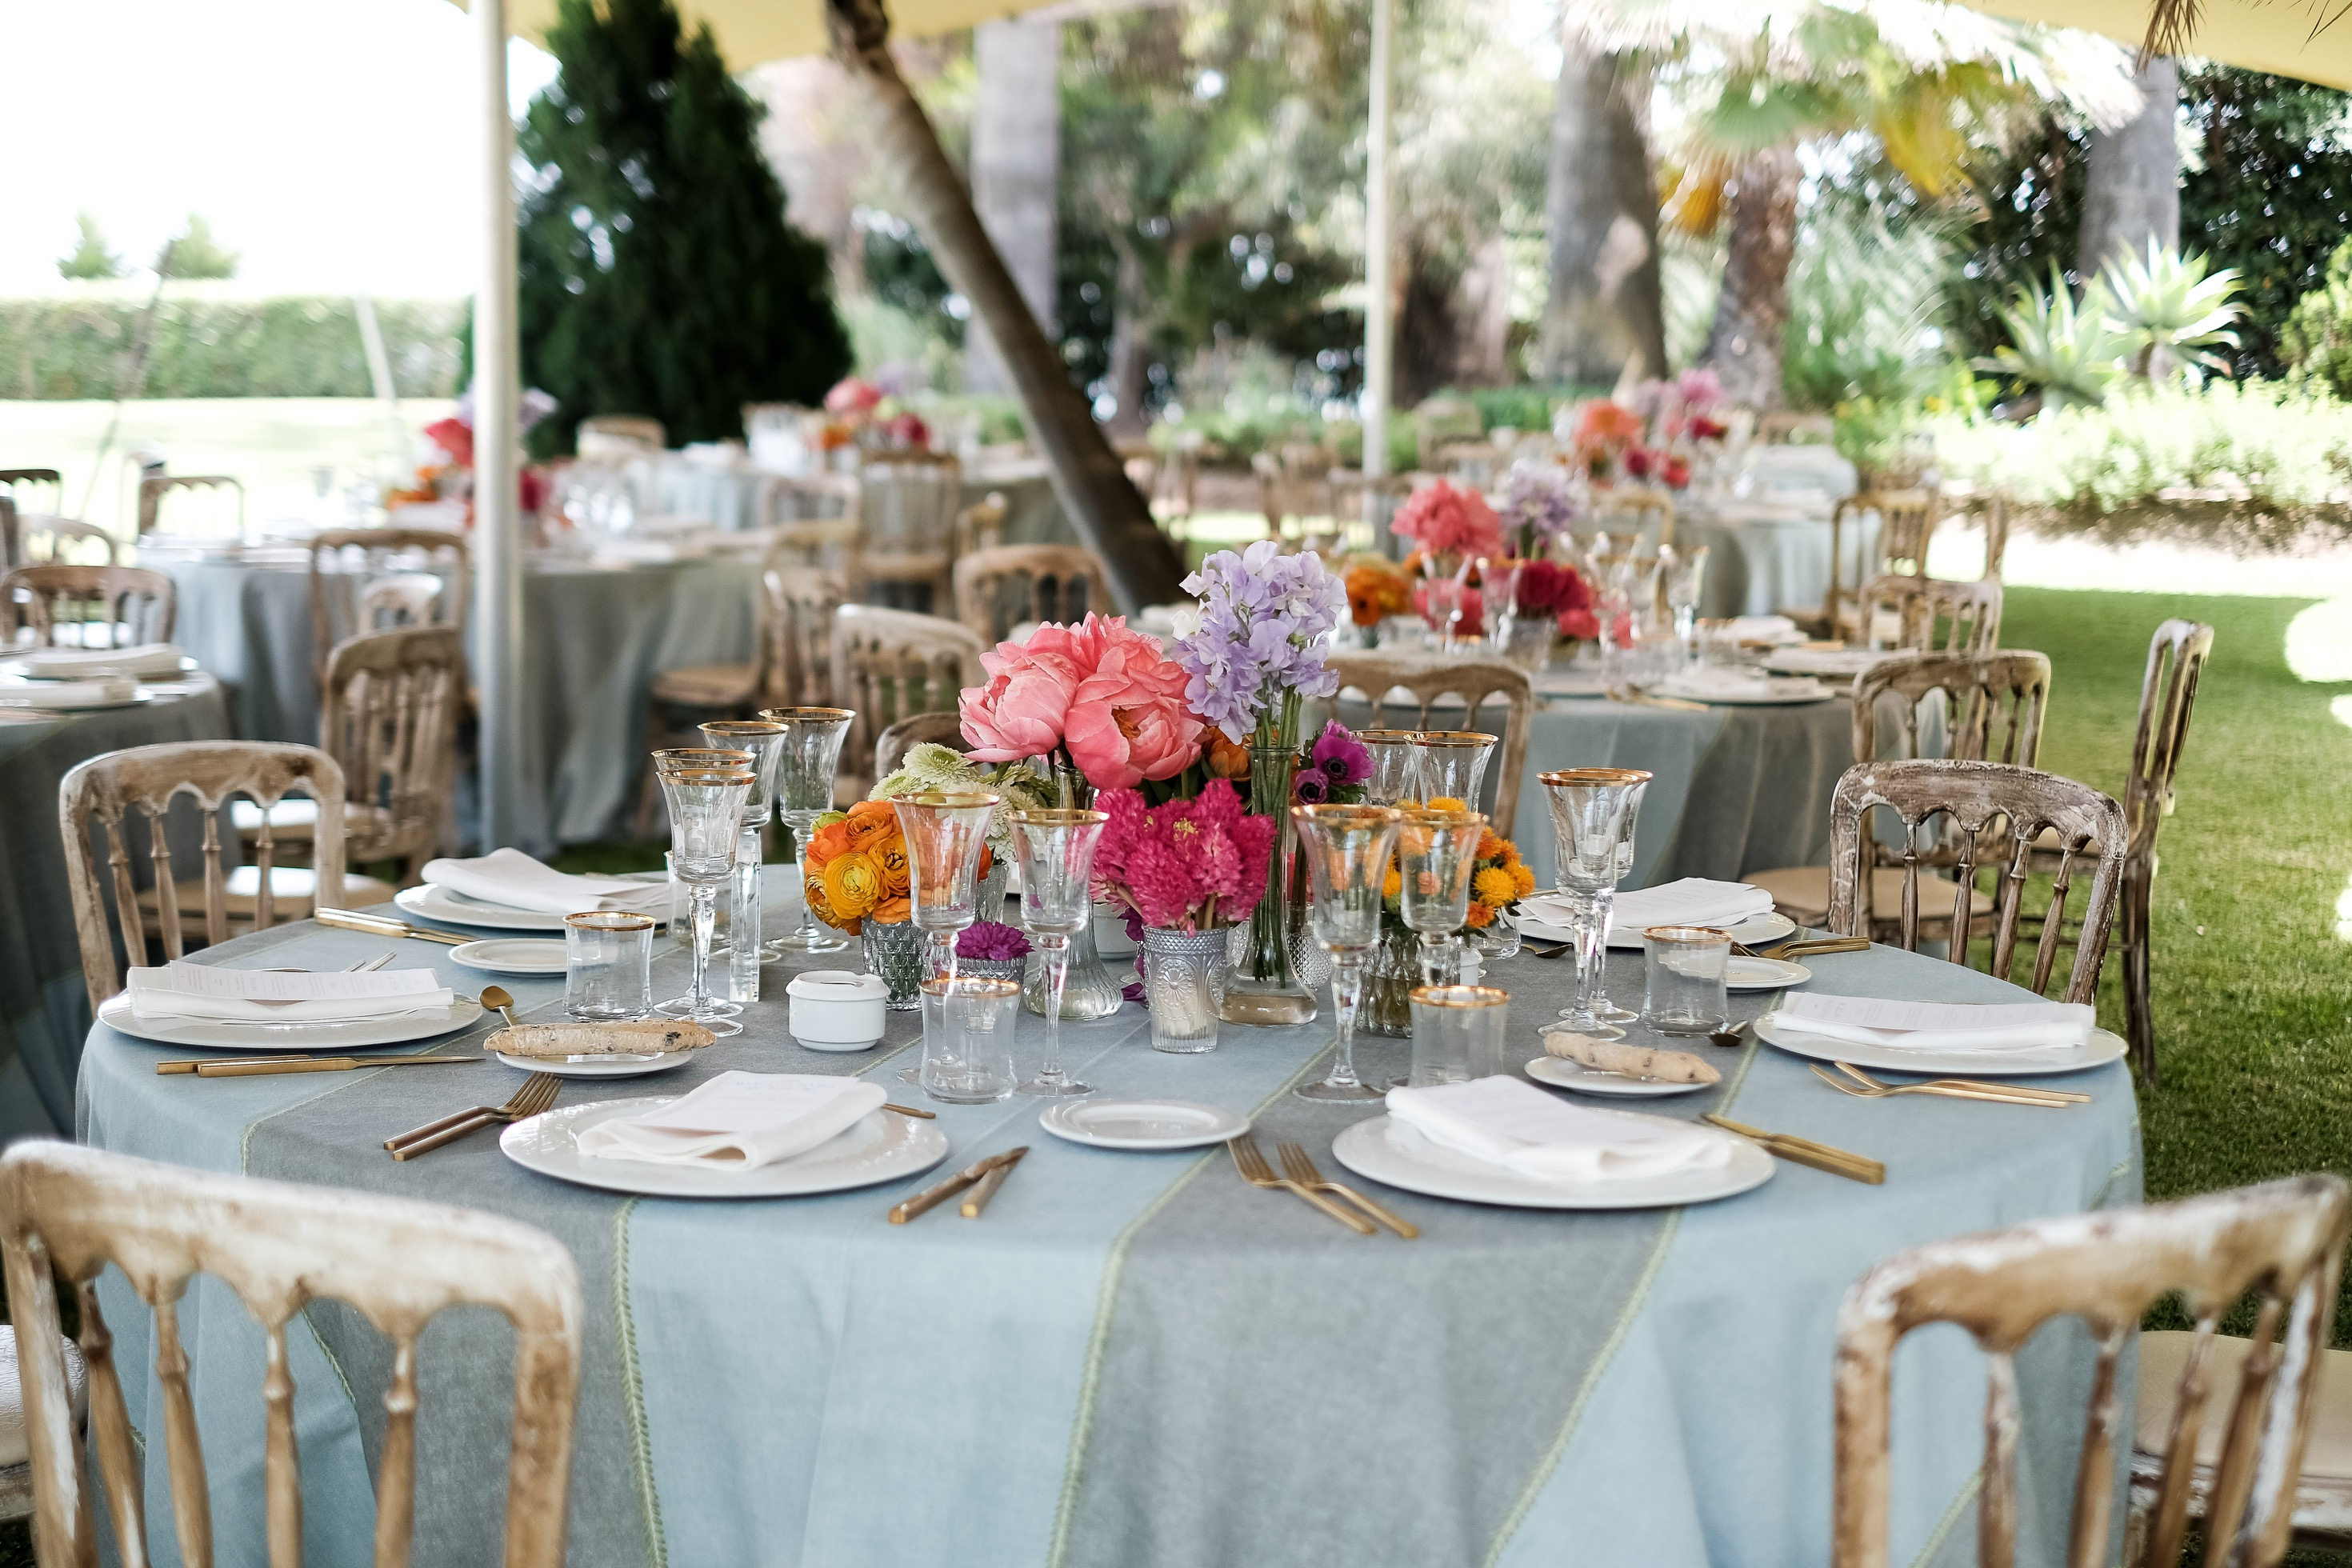 Si-Quiero-Wedding-Planners-Marbella-Isabel-Manolo-115